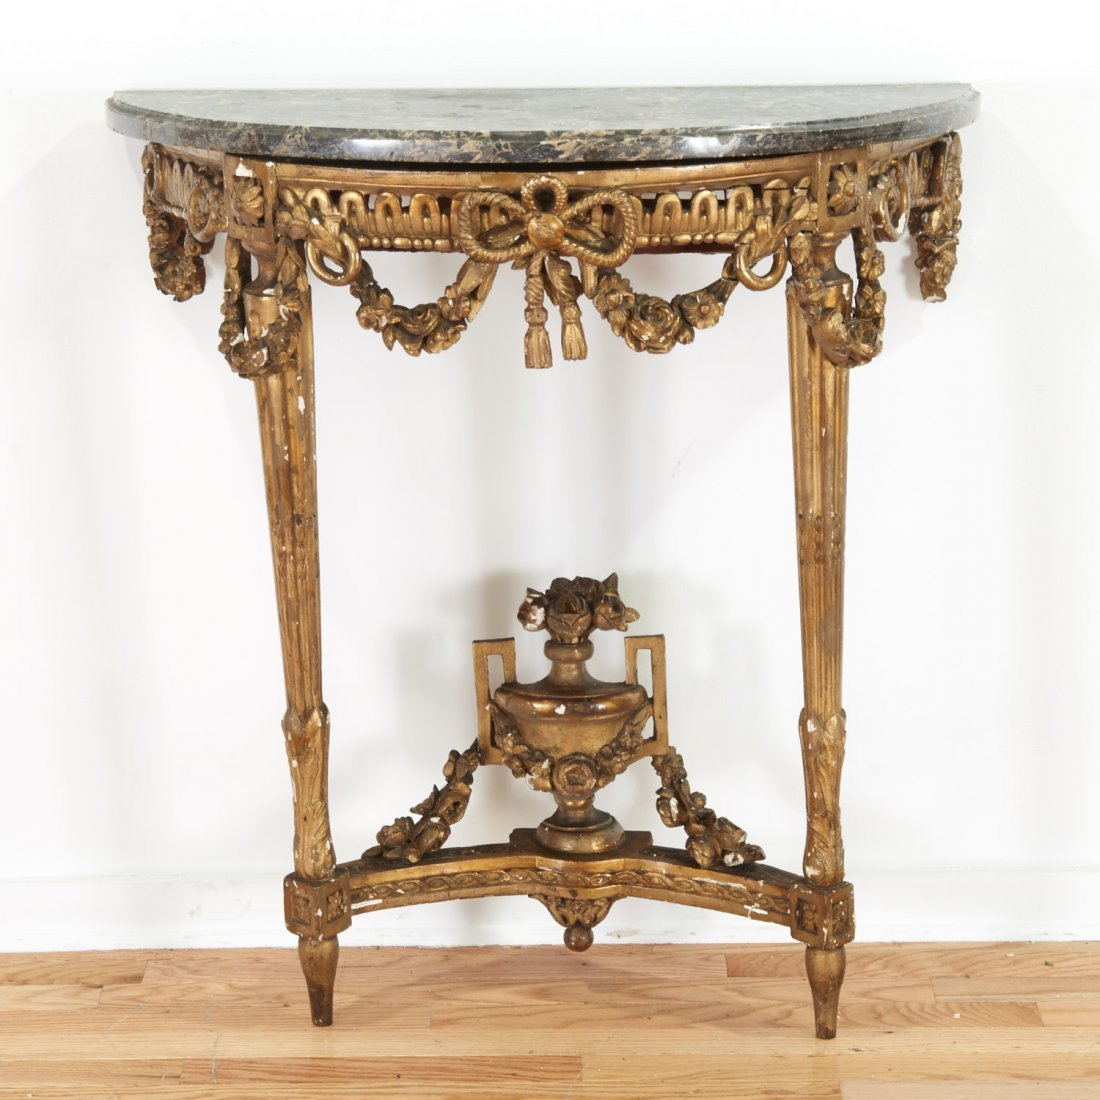 Louis XVI style marble top giltwood console